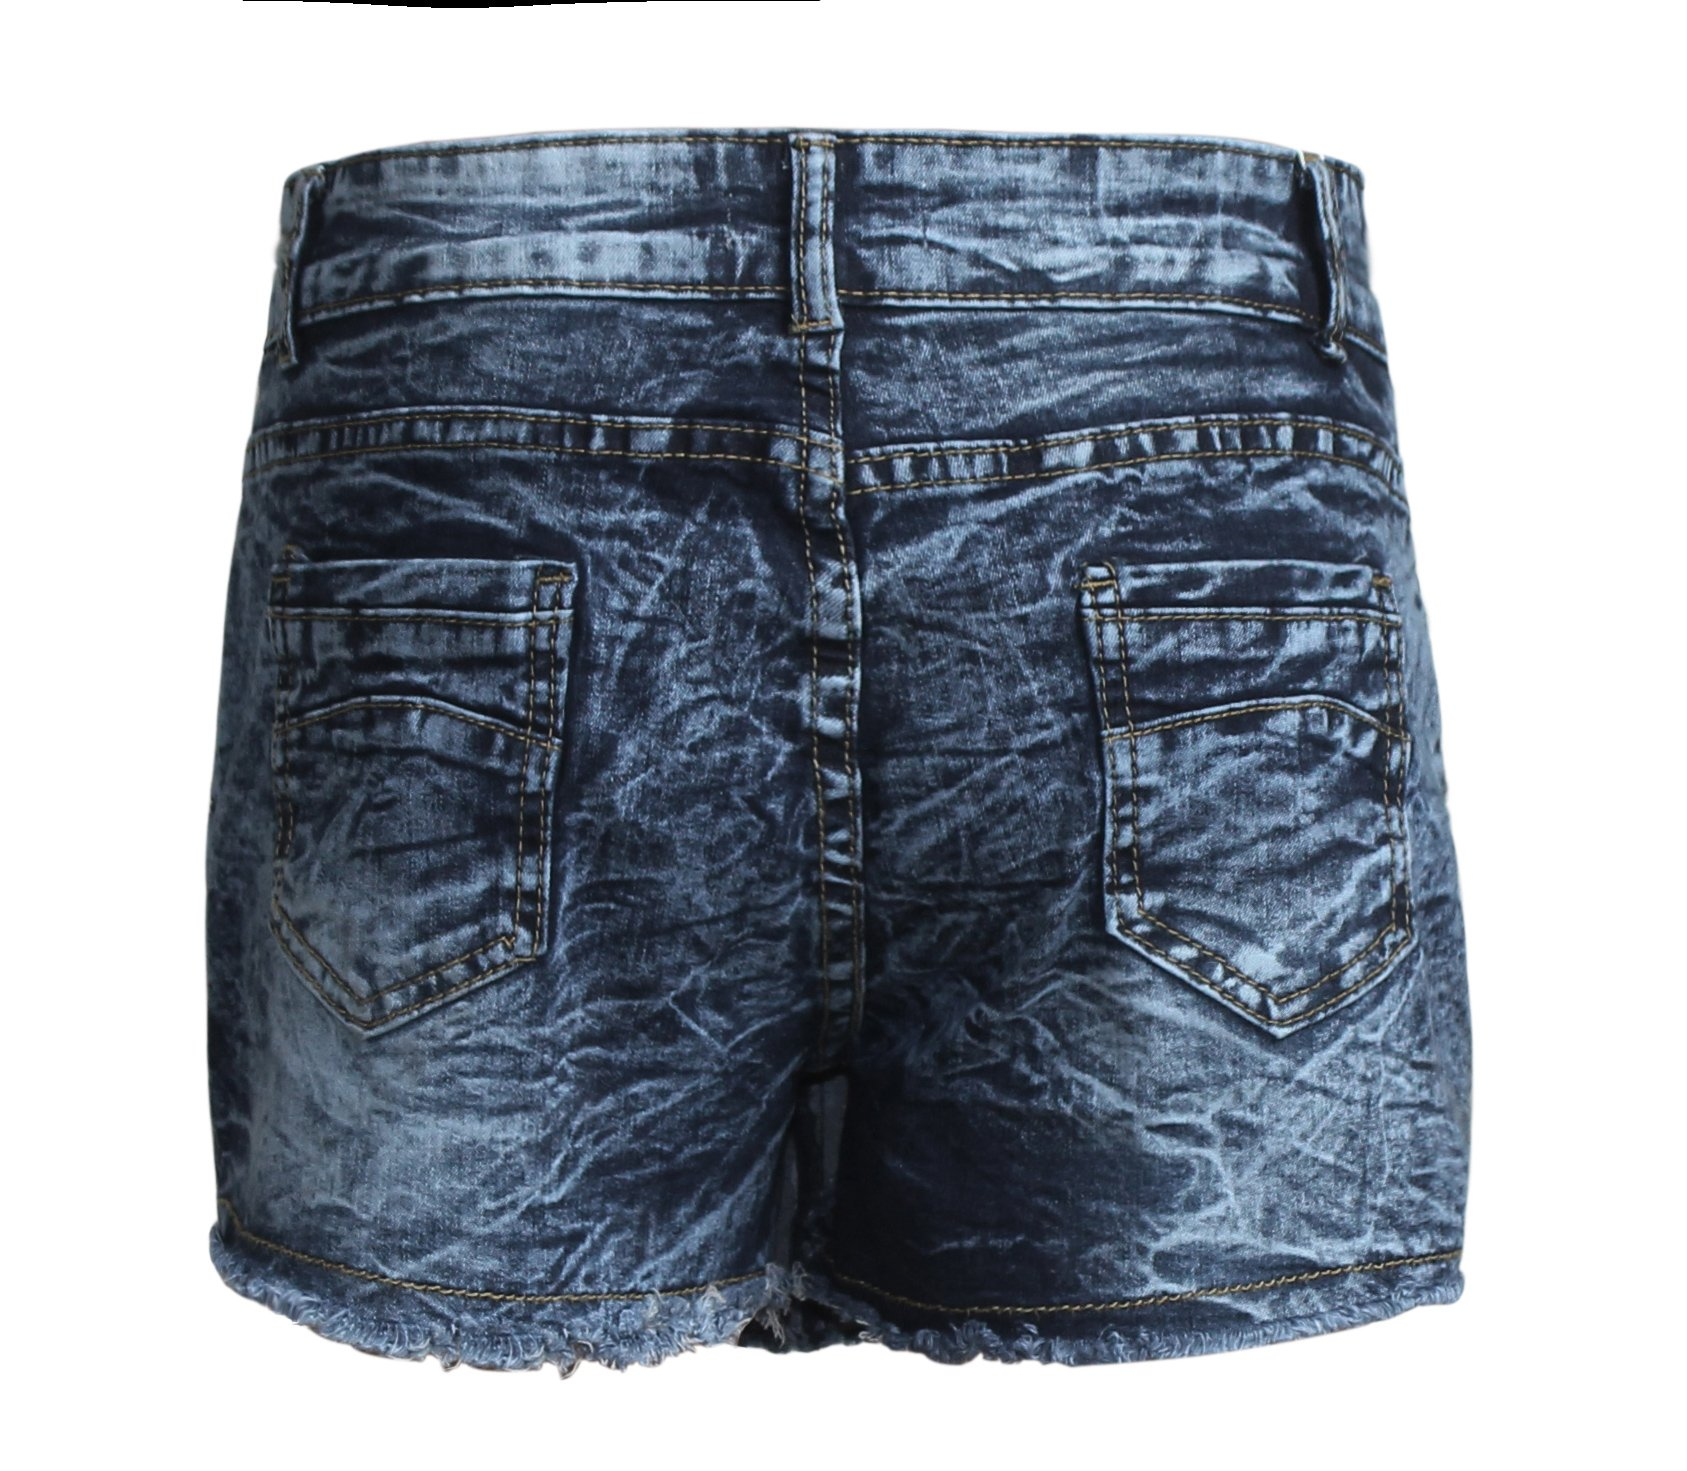 Goddess Area Women\'s Casual Mid Waisted Distressed Ripped Stretch Denim Shorts Jeans (9, Blue)